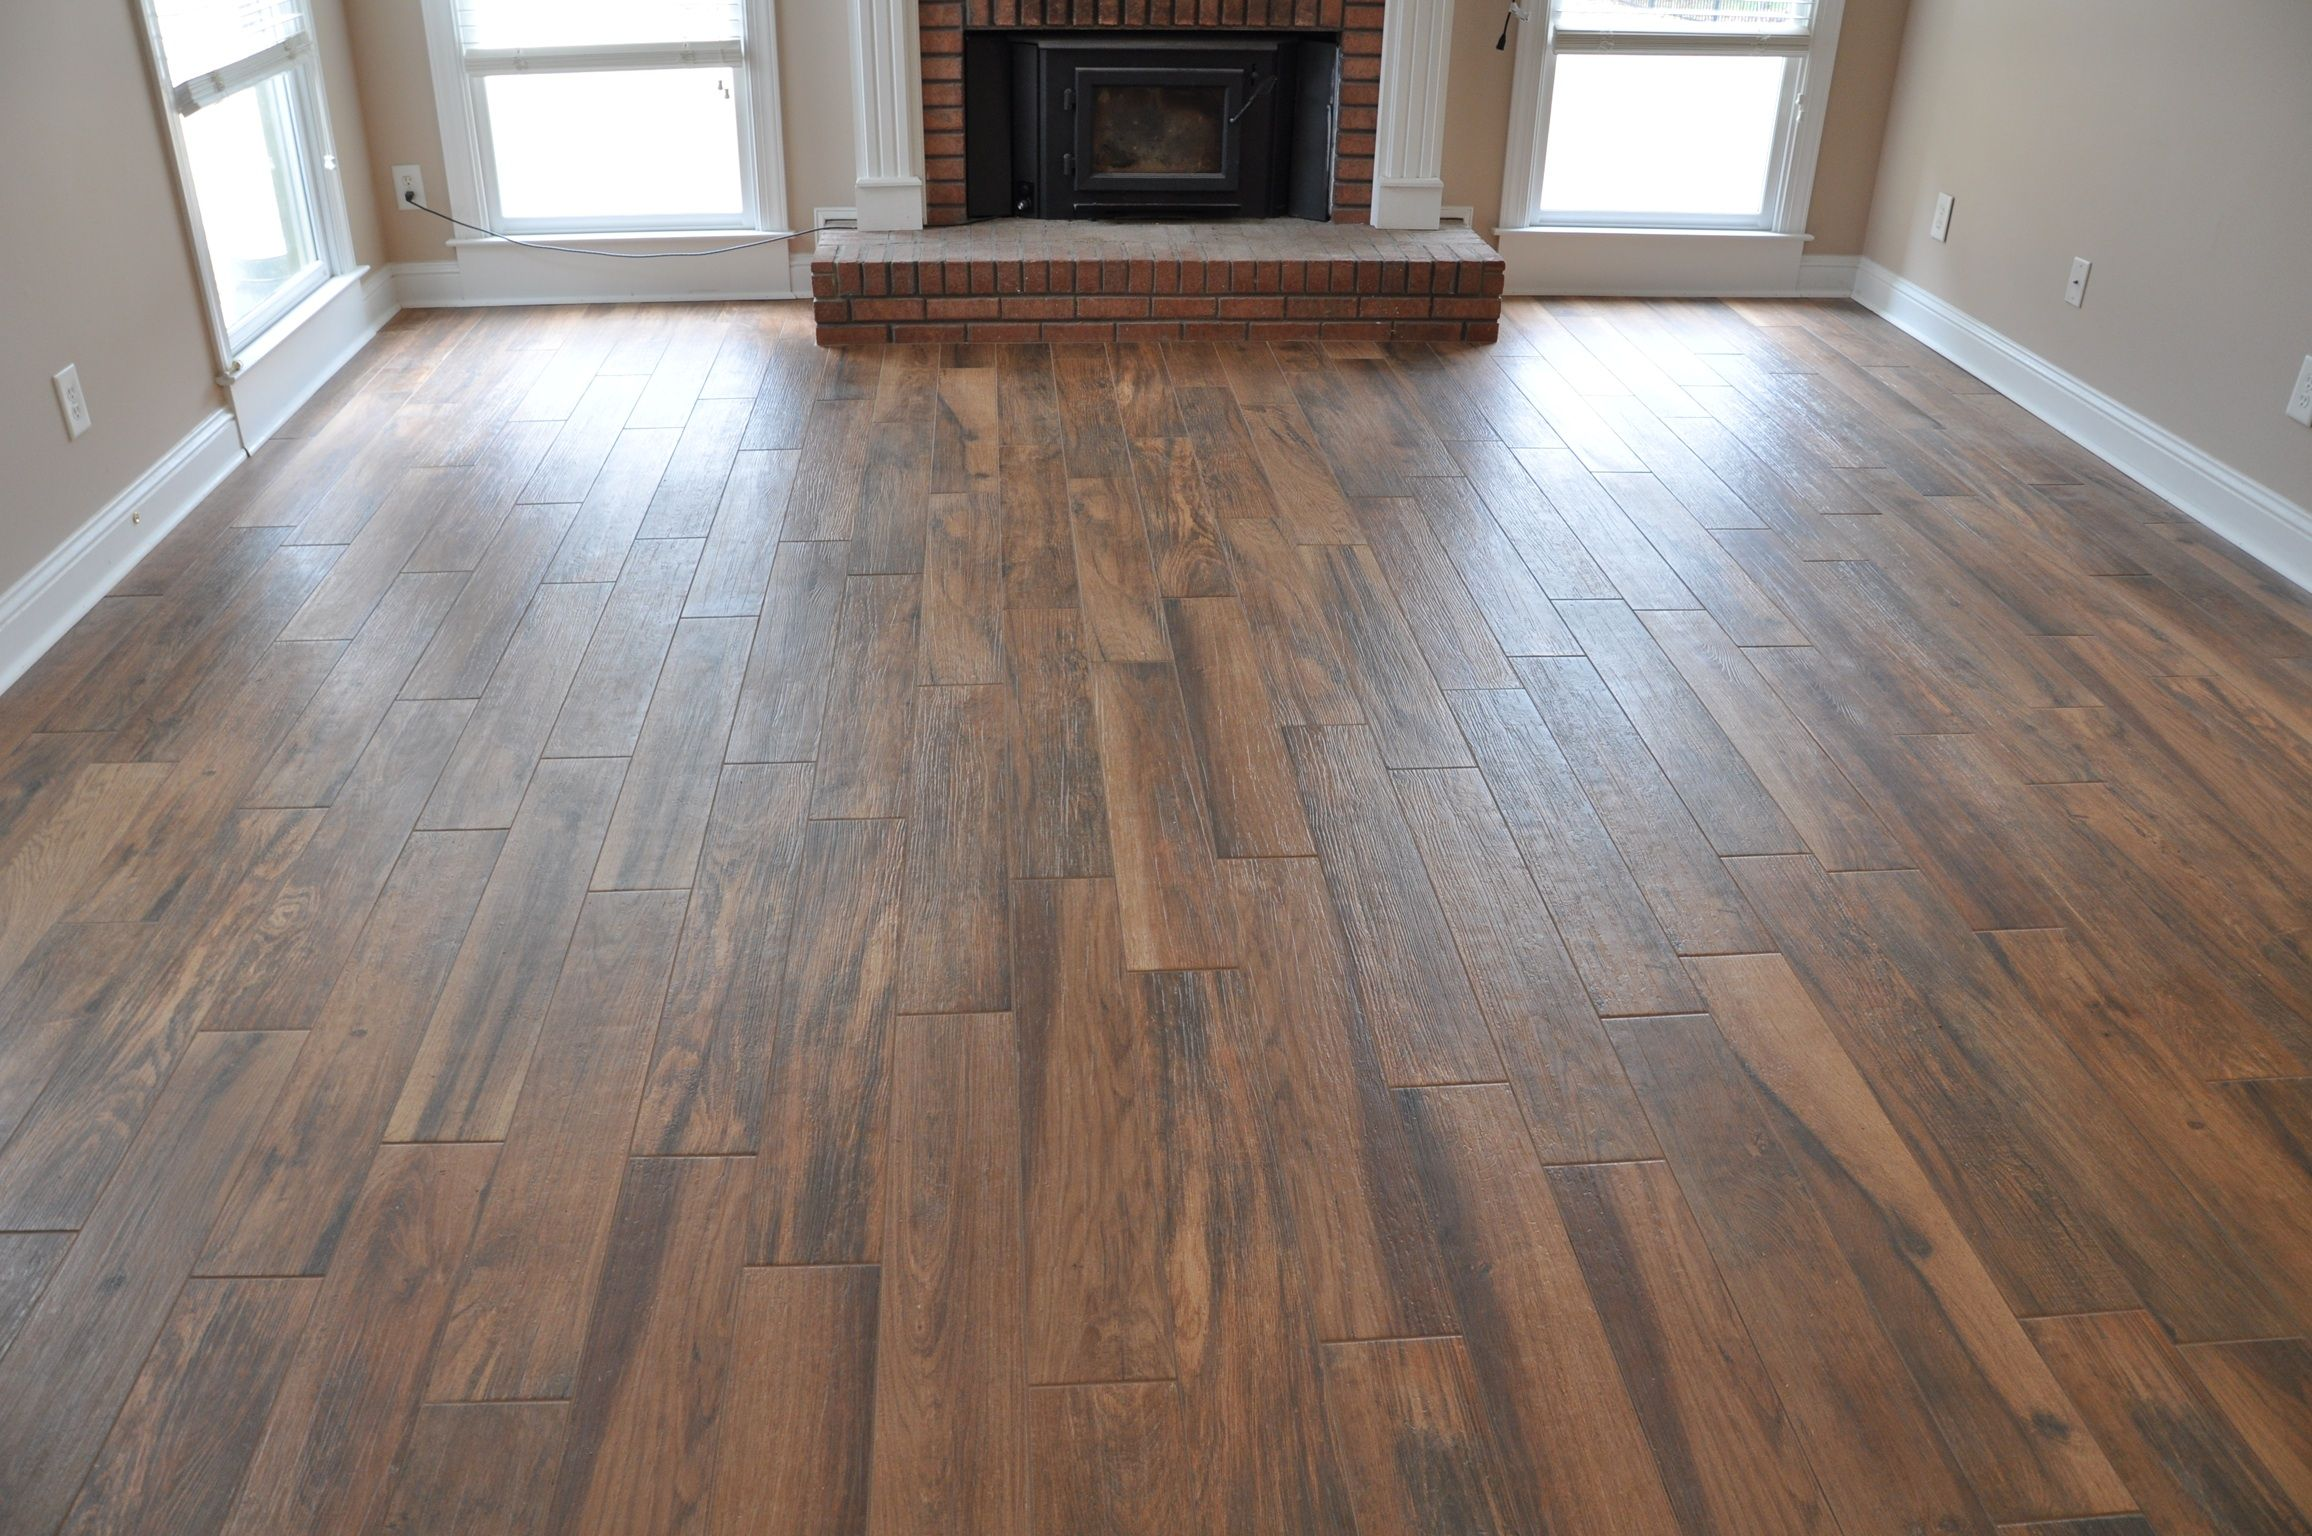 Porcelain Floor Tiles Wood Look Porcelain Tile Google Search Flooring